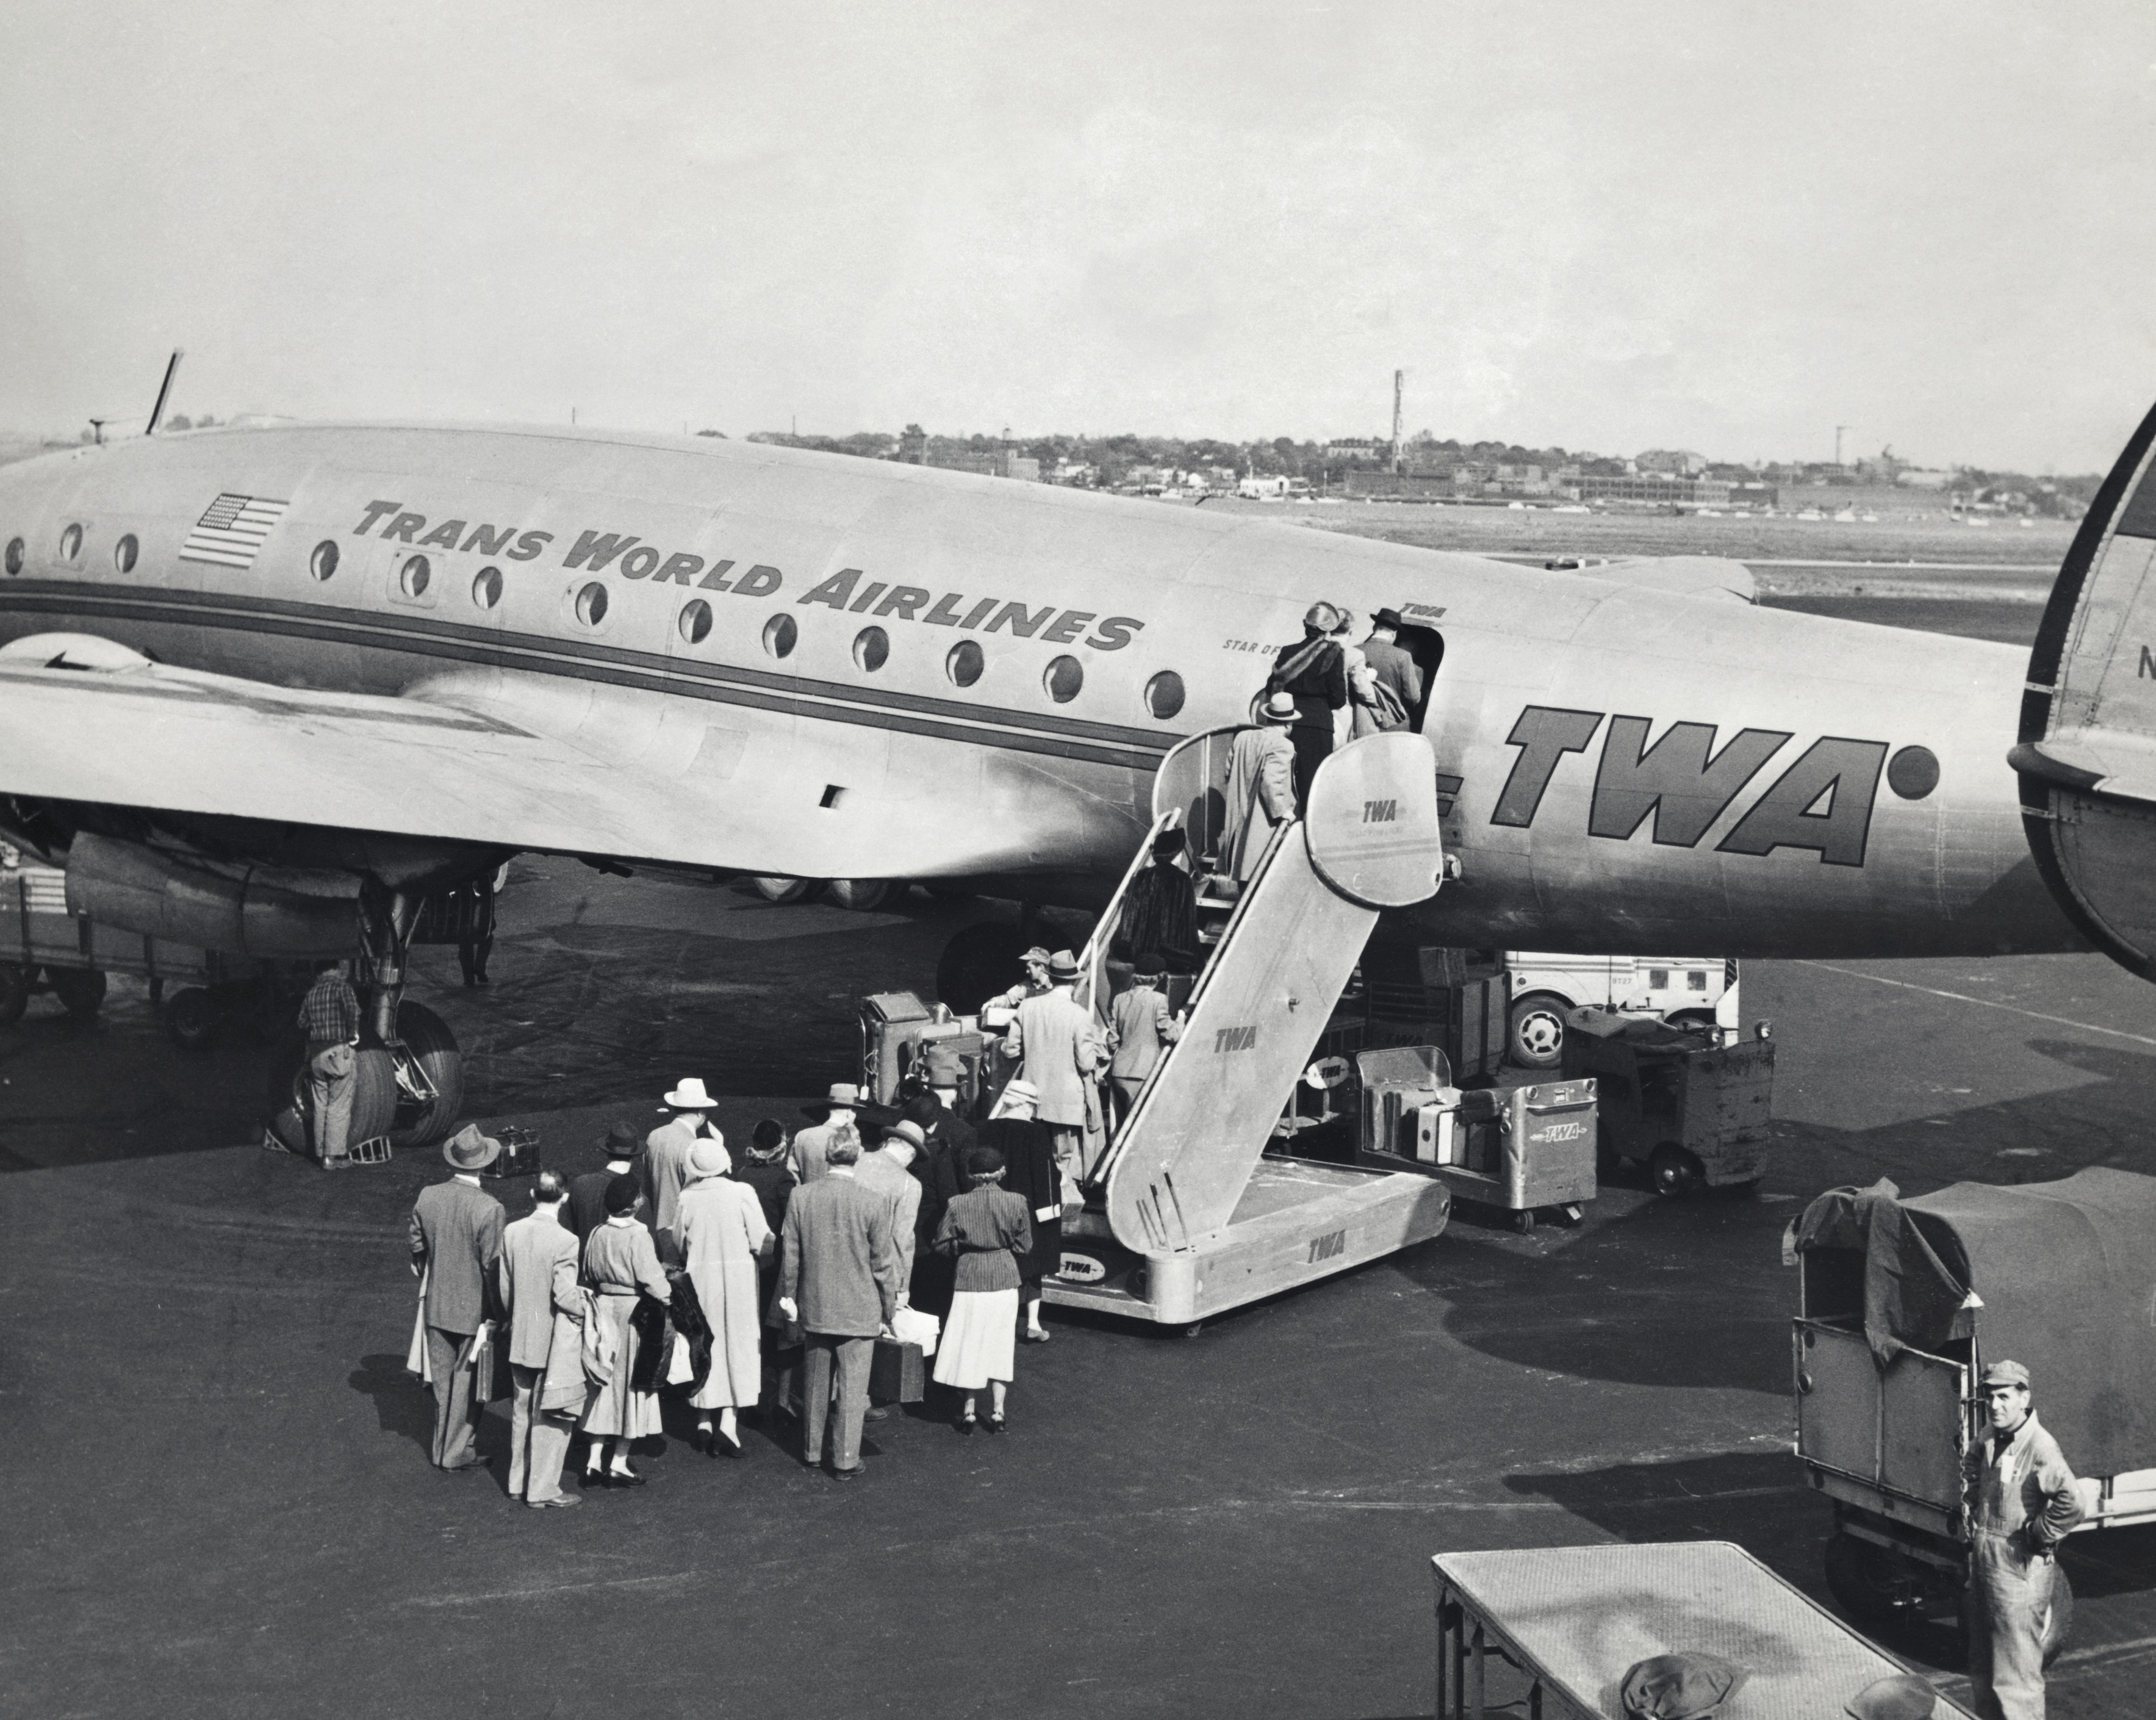 High angle view of passengers boarding an airplane